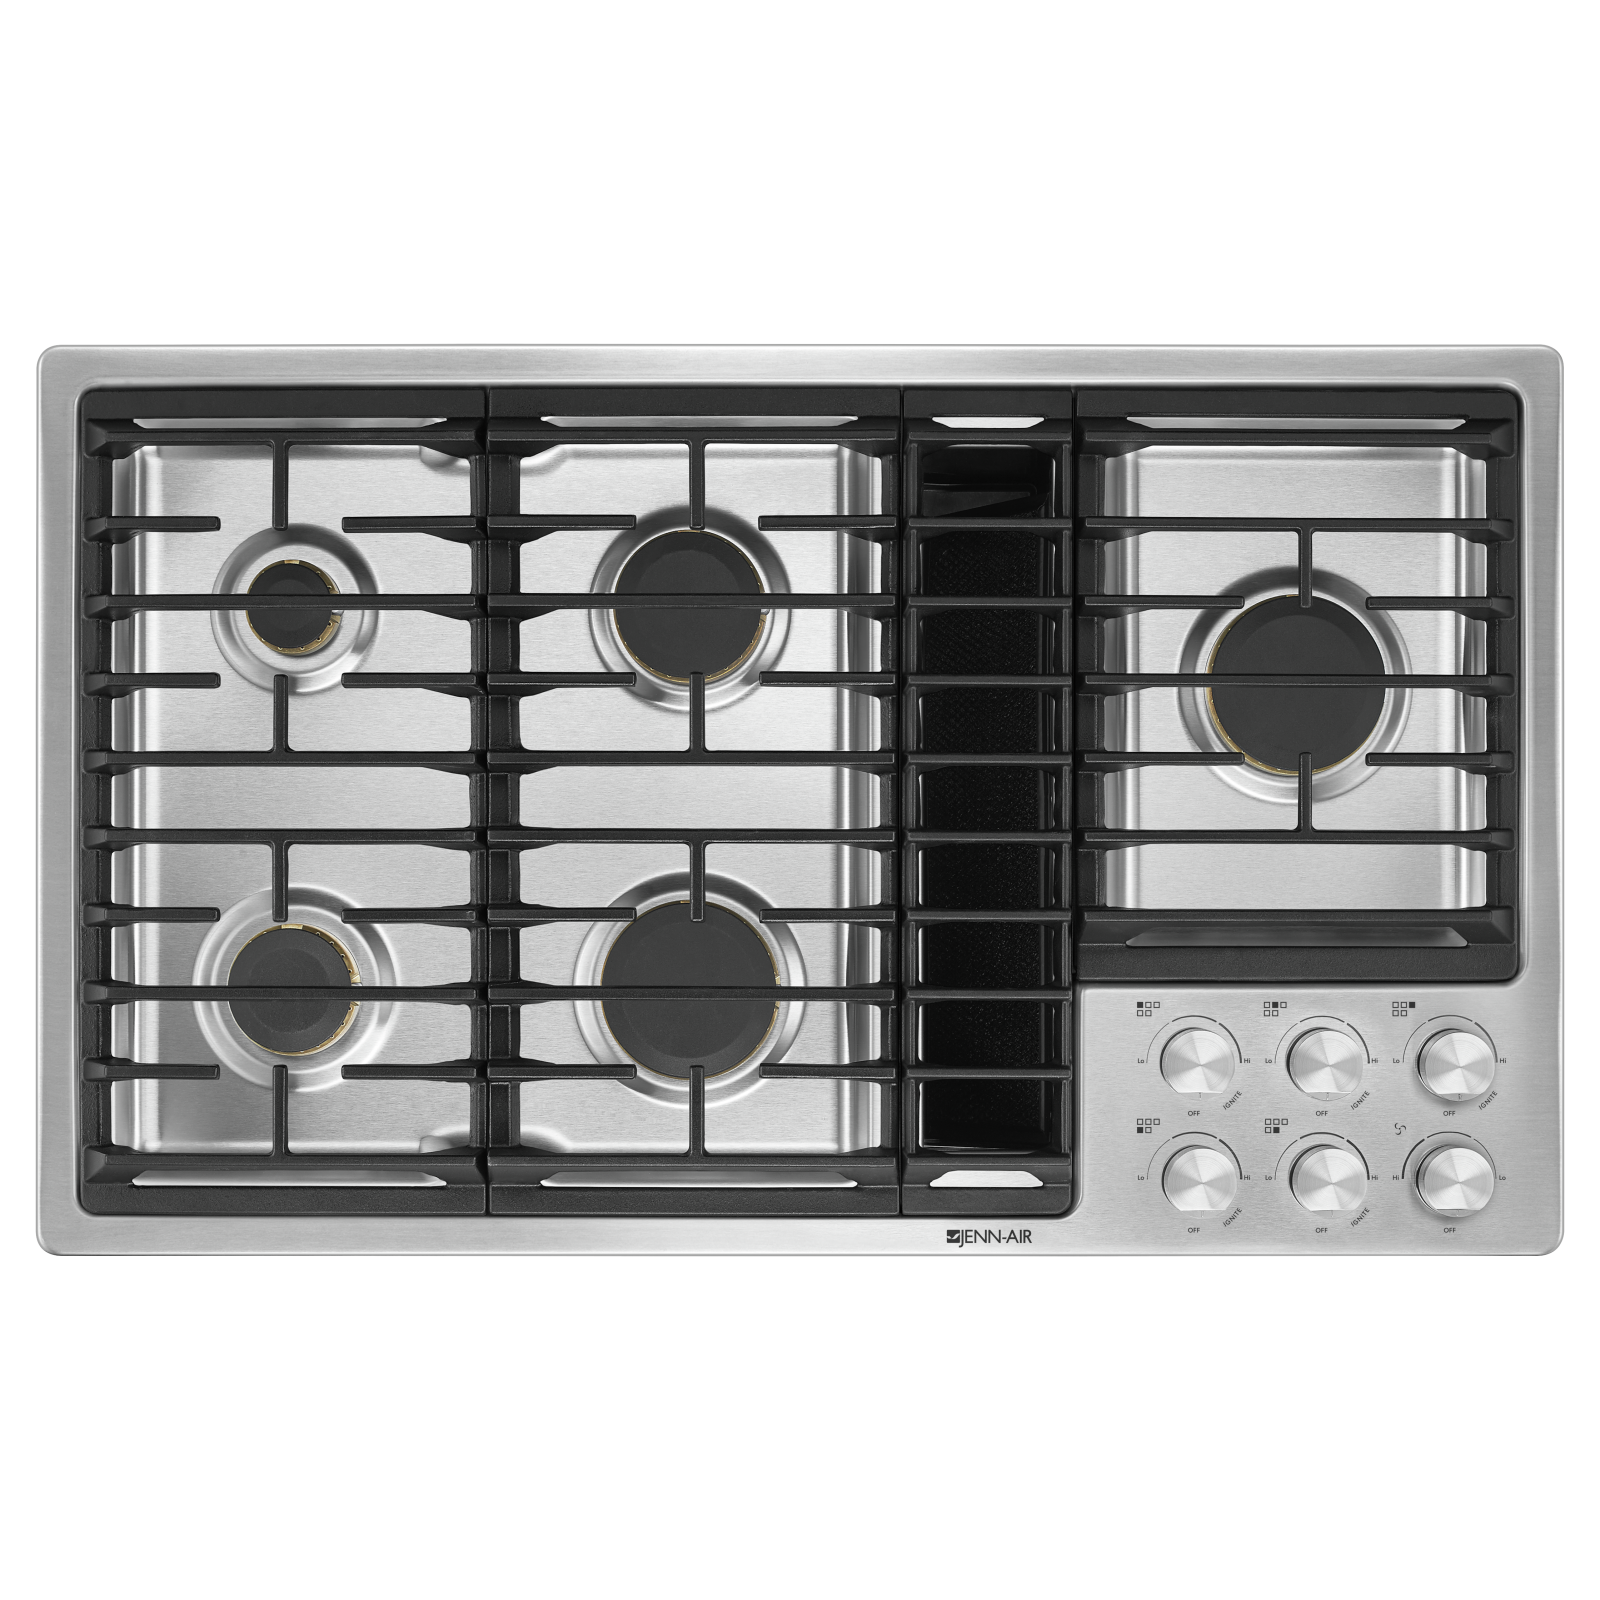 Jenn-Air Cooktop in Stainless Steel color showcased by Corbeil Electro Store